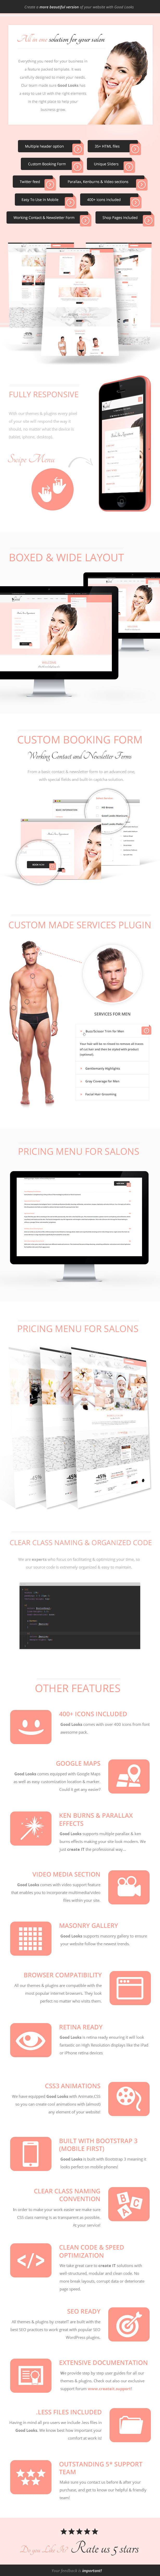 Looks Good - Beauty Salon Template